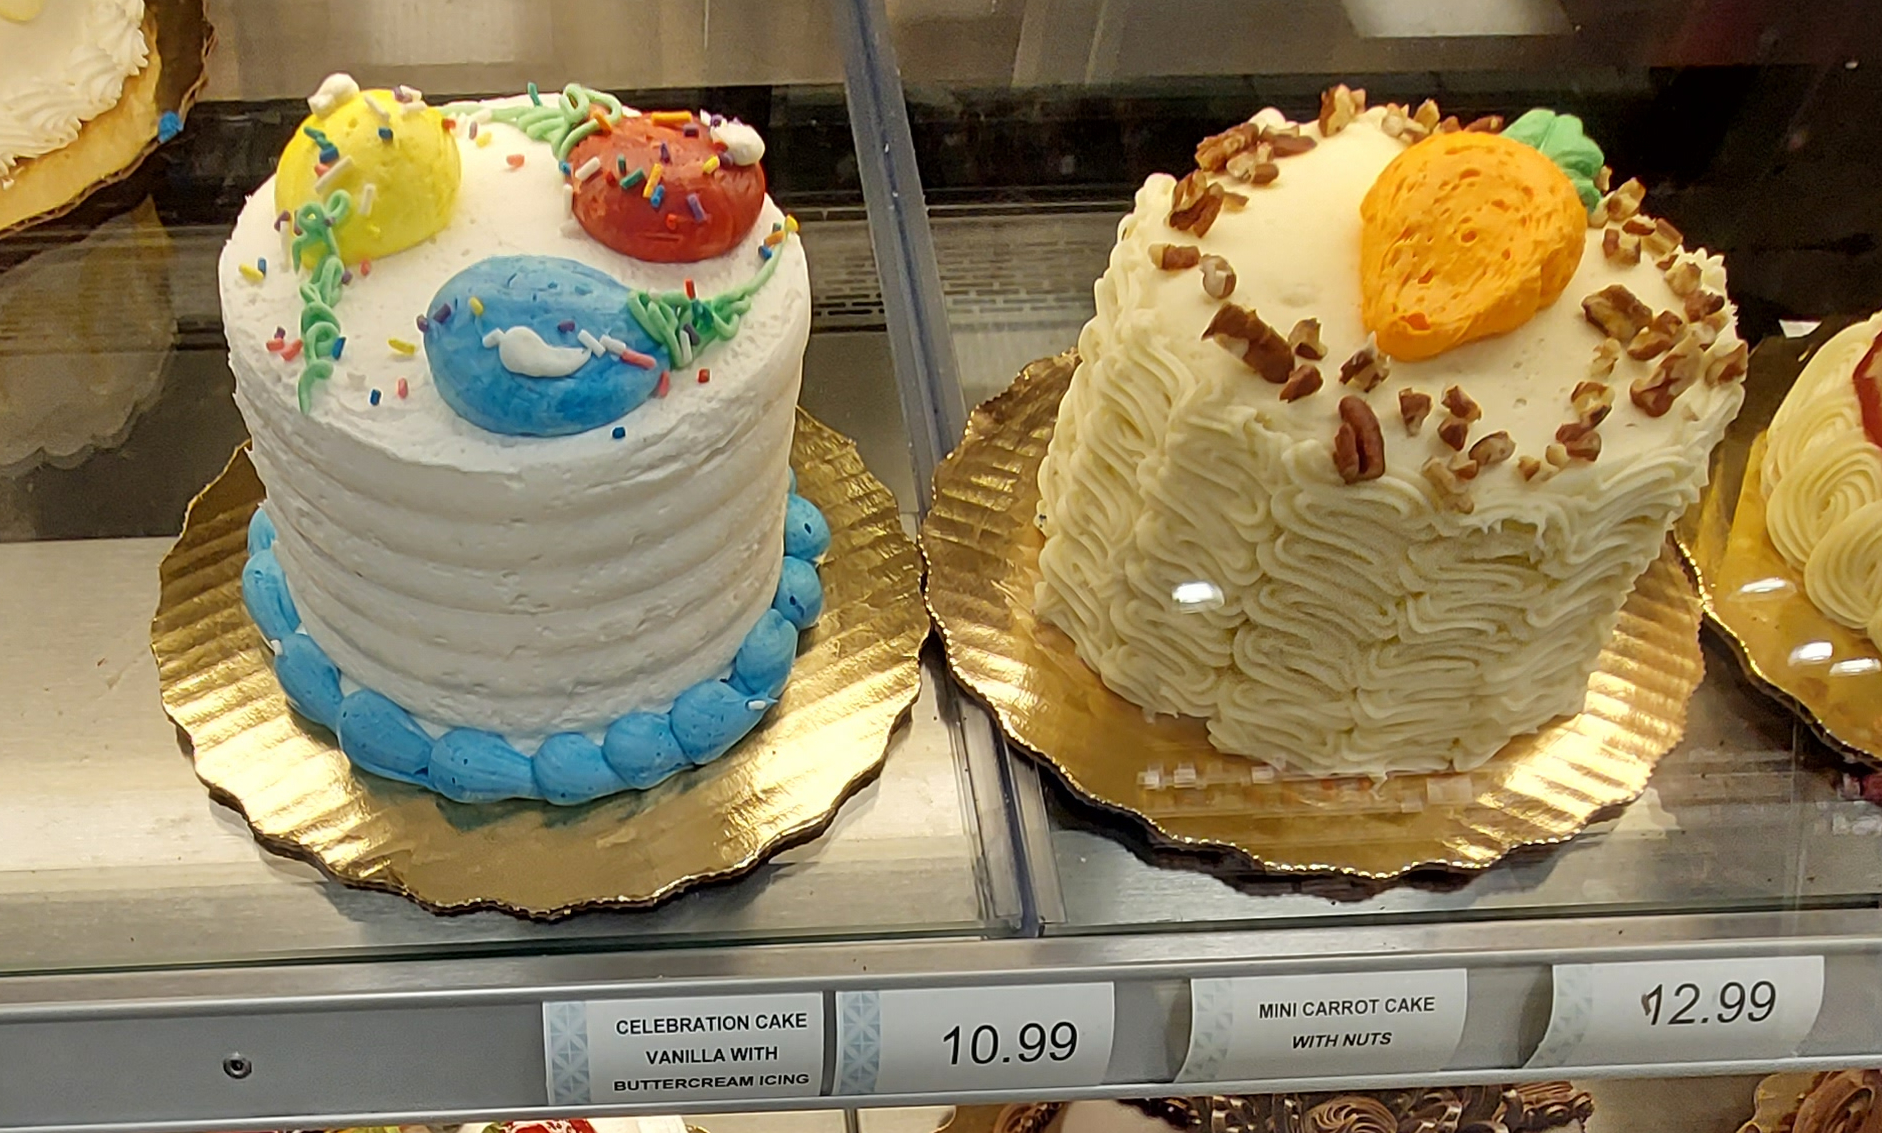 birthday cakes on display in a supermarket